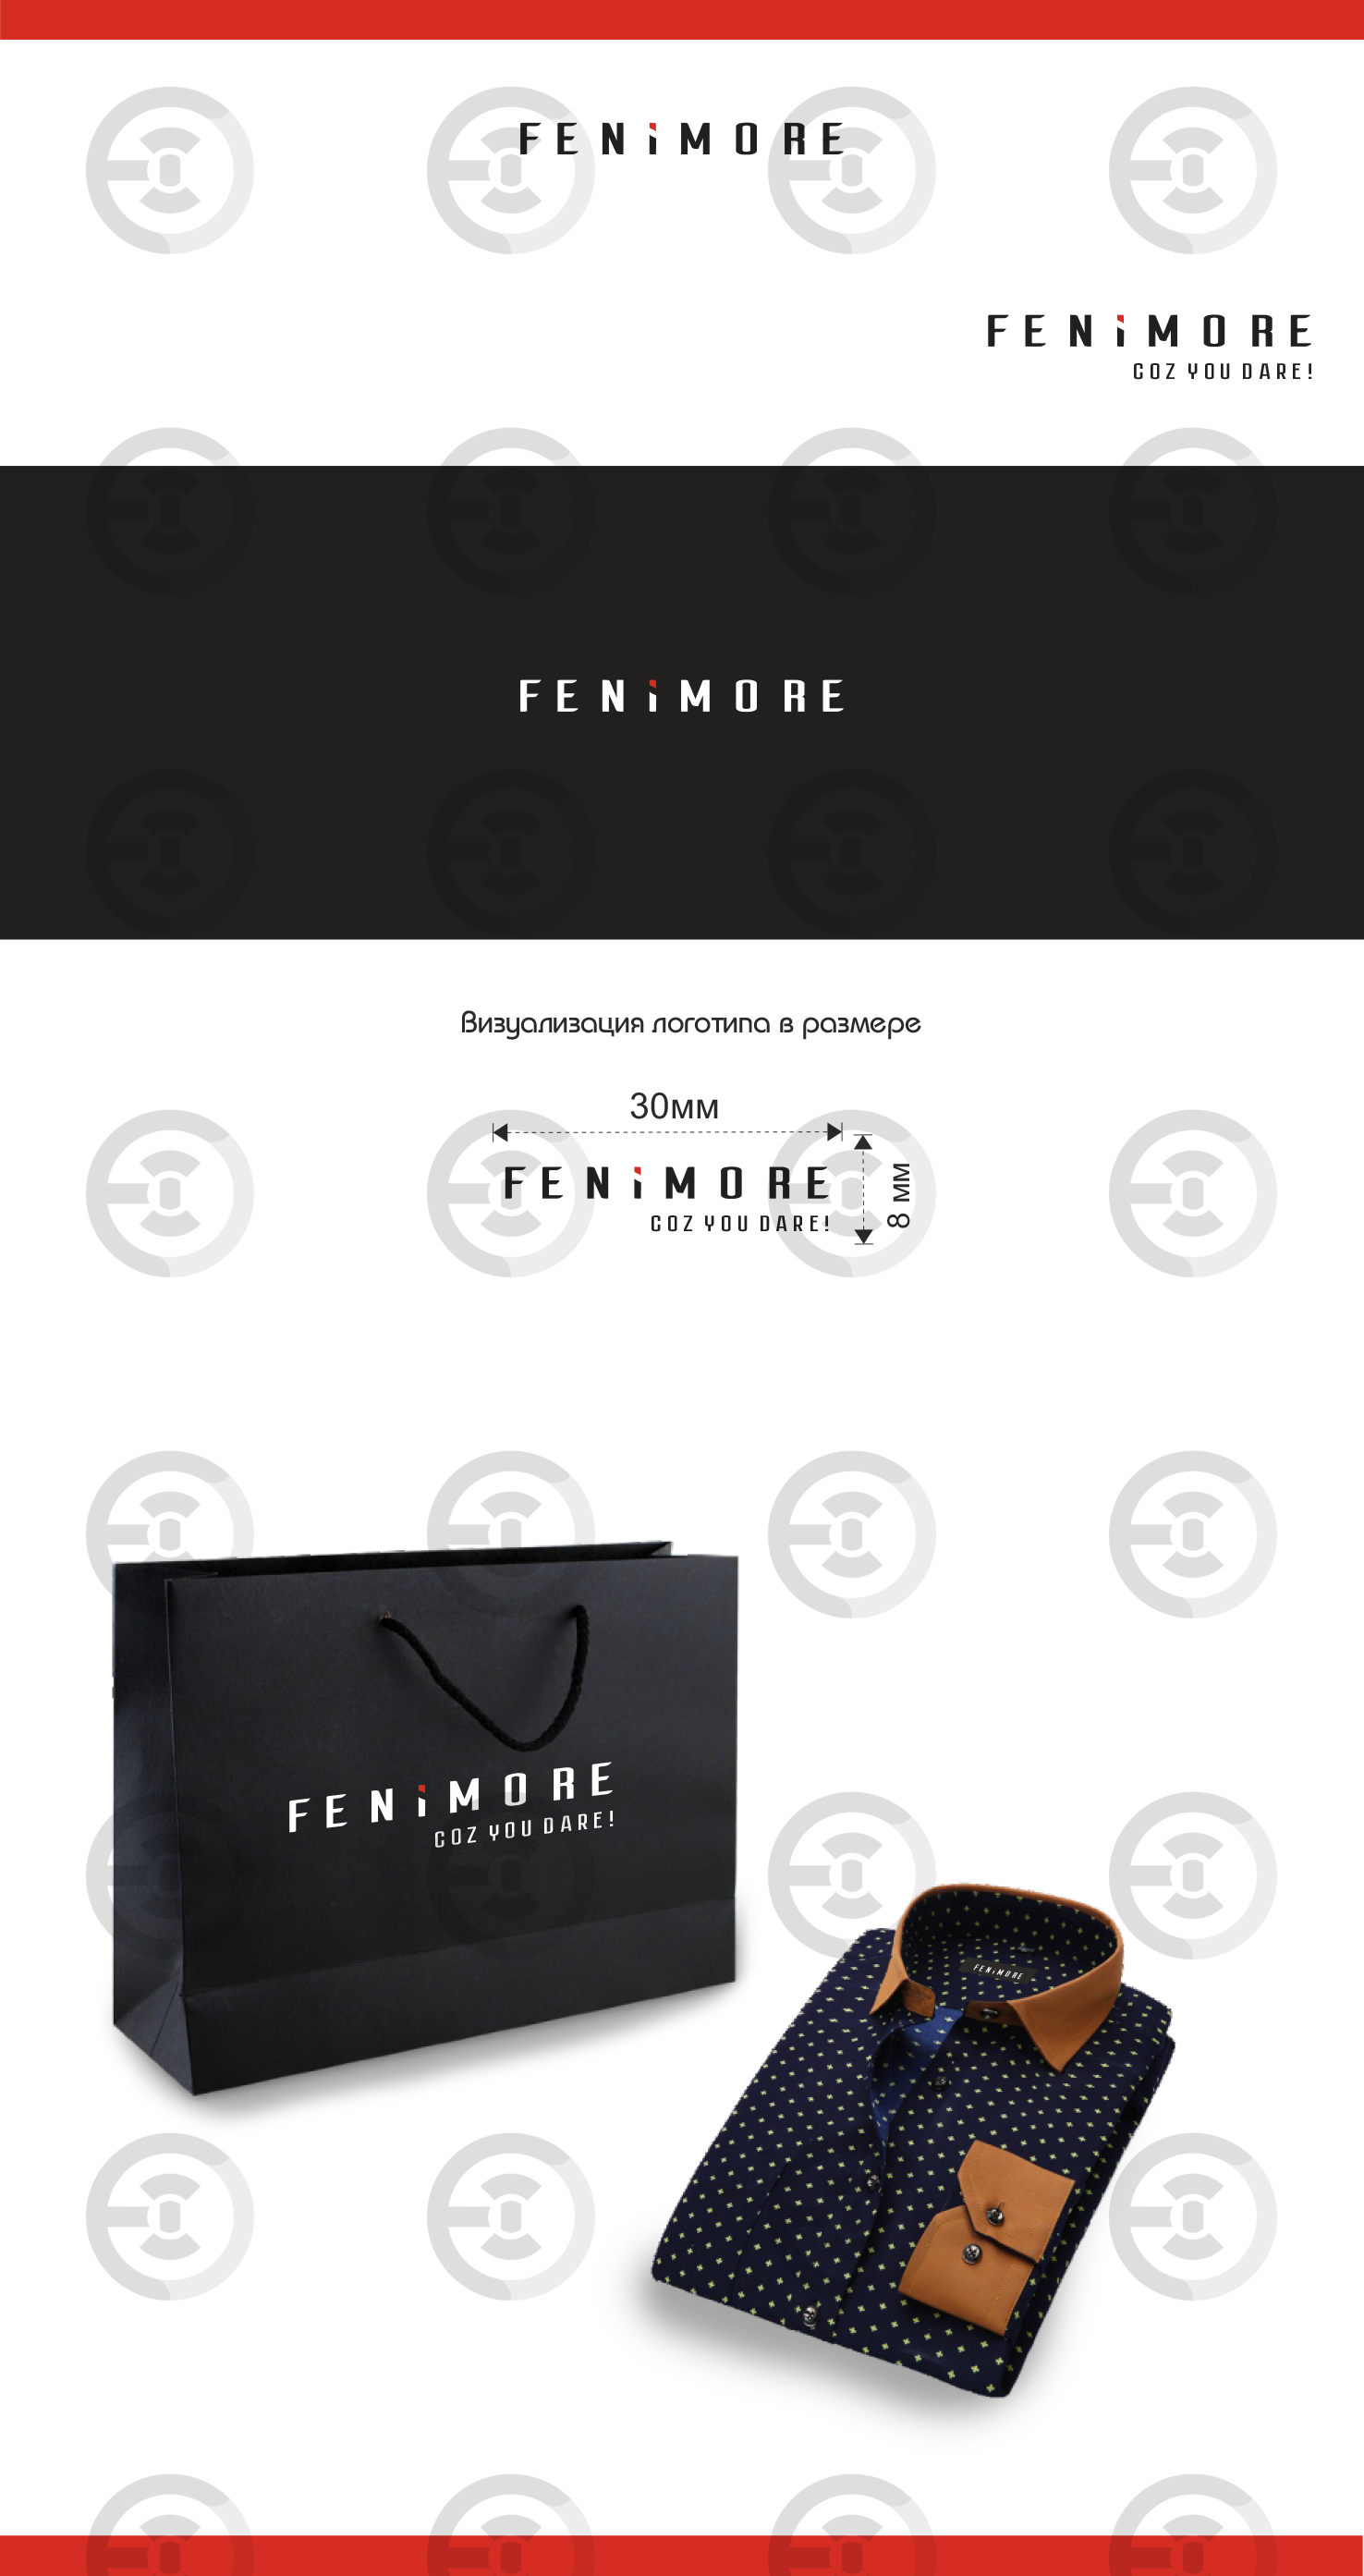 Fenimore_logo.png